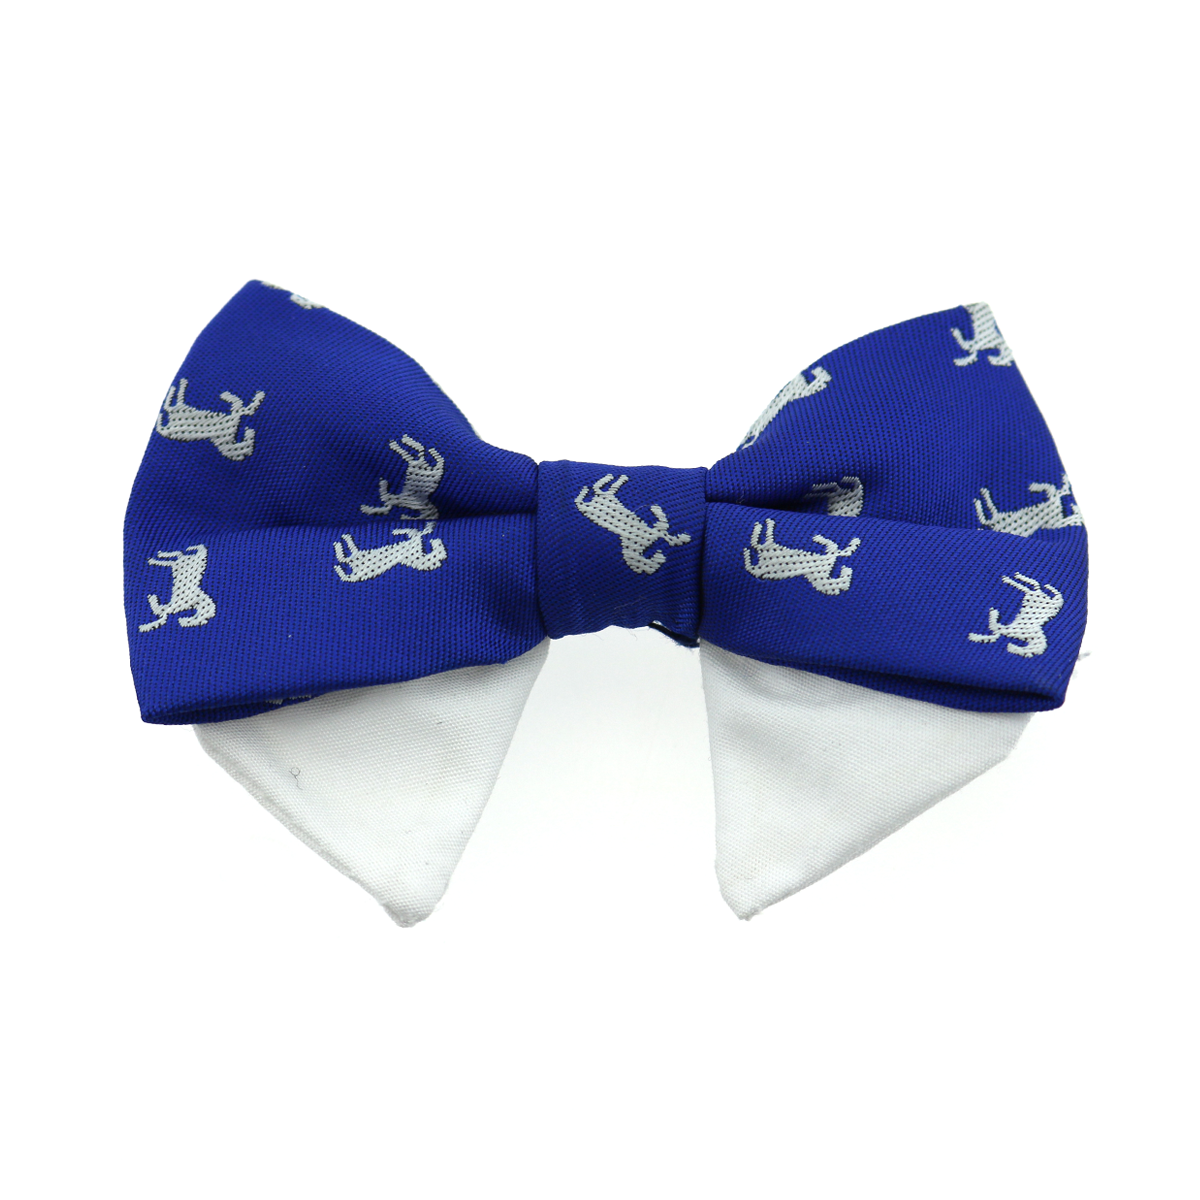 Dog Bow Tie Collar Attachment by Doggie Design - Royal Blue